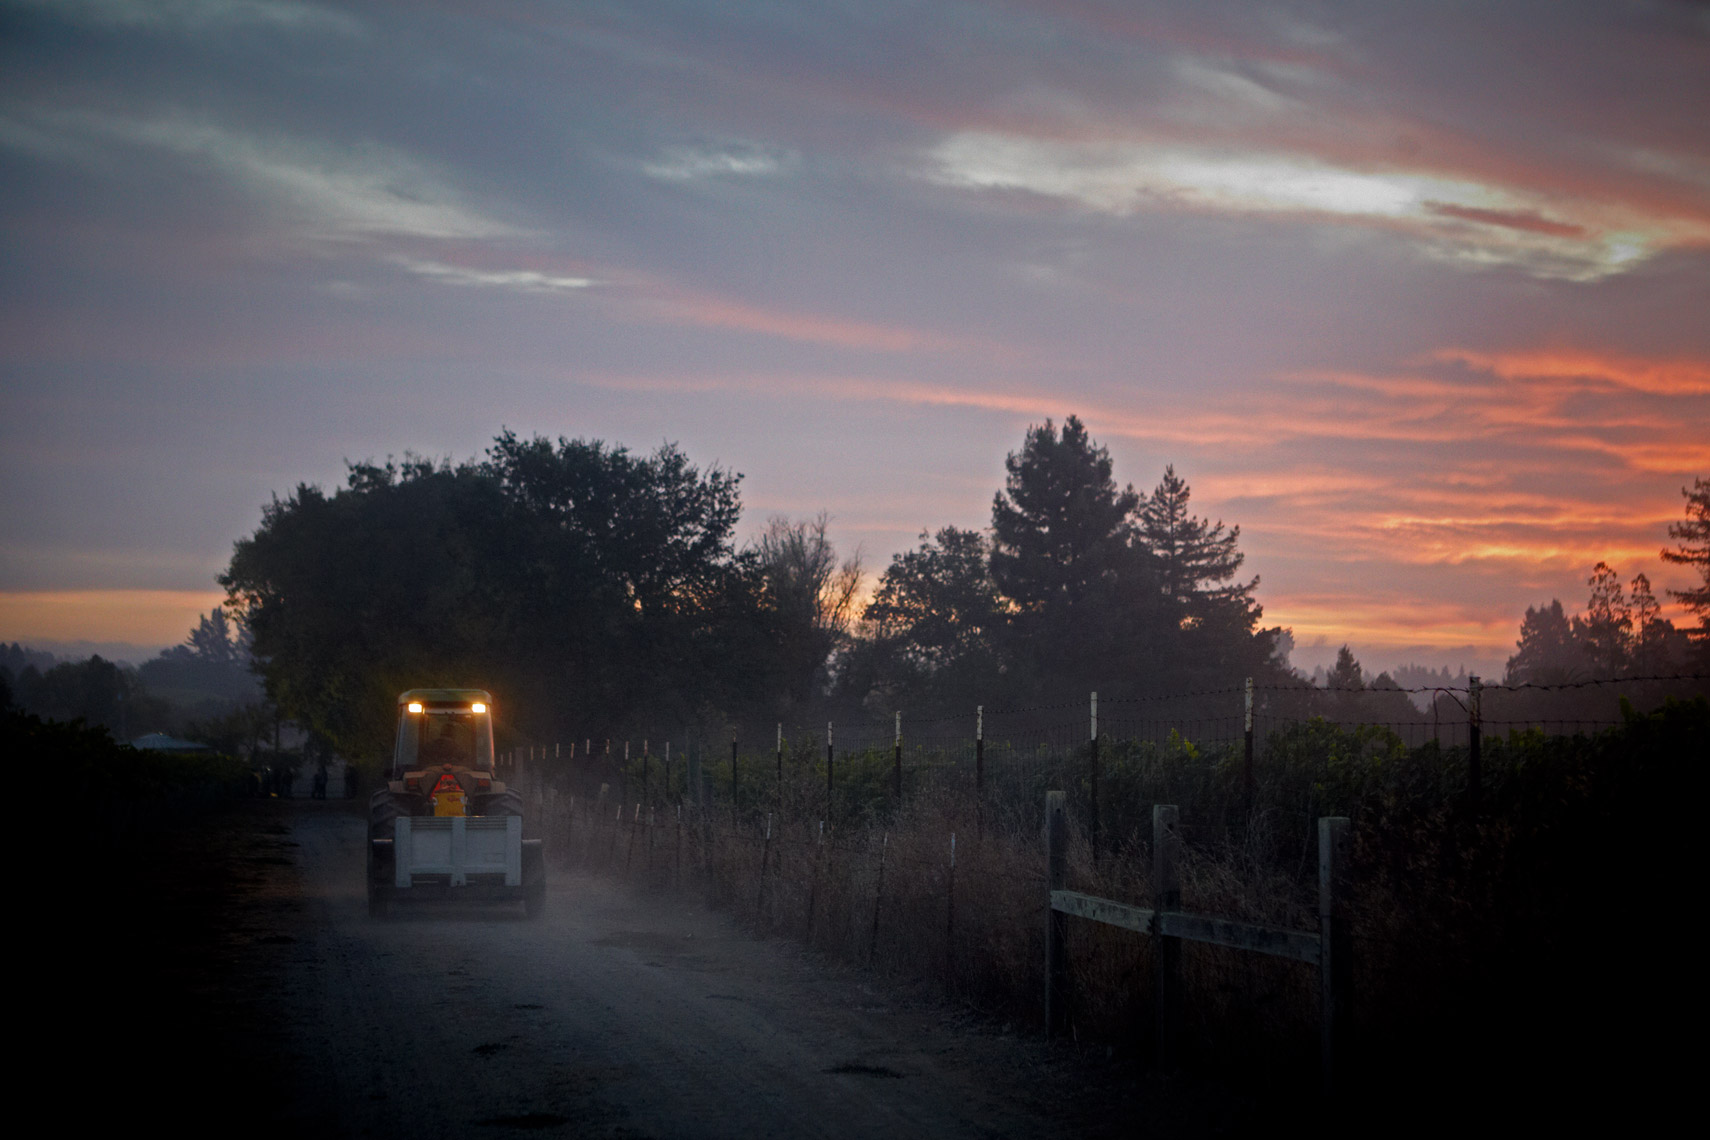 AlanCampbellPhotography, dawn in the vineyard during harvest